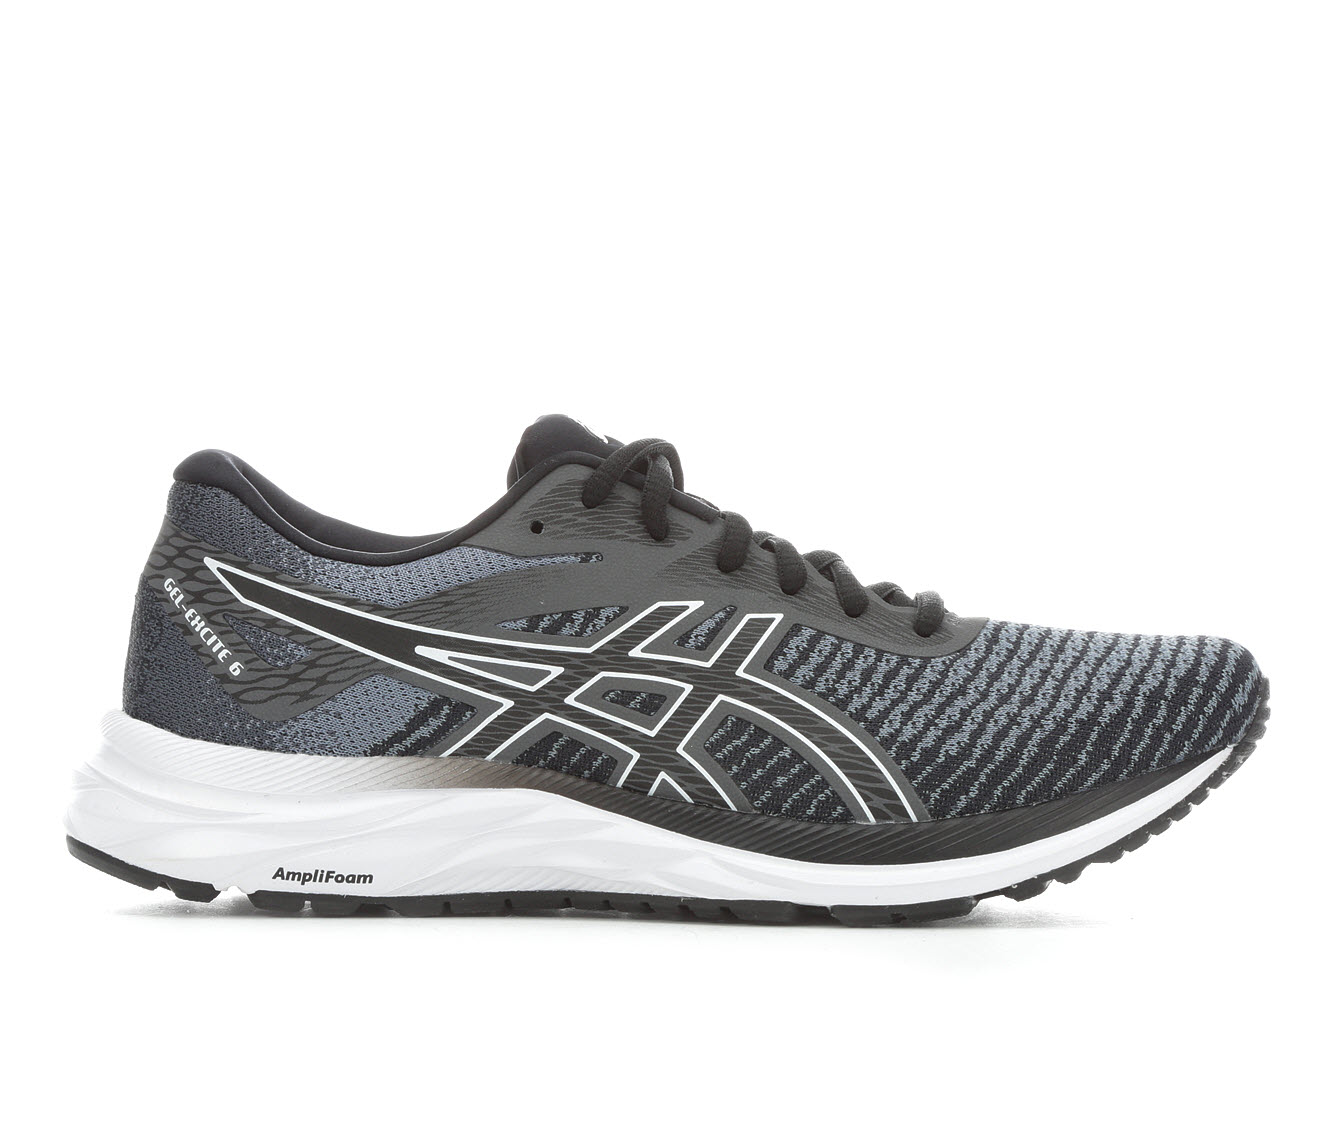 ASICS Gel Excite 6 Twist Women's Athletic Shoe (Gray)